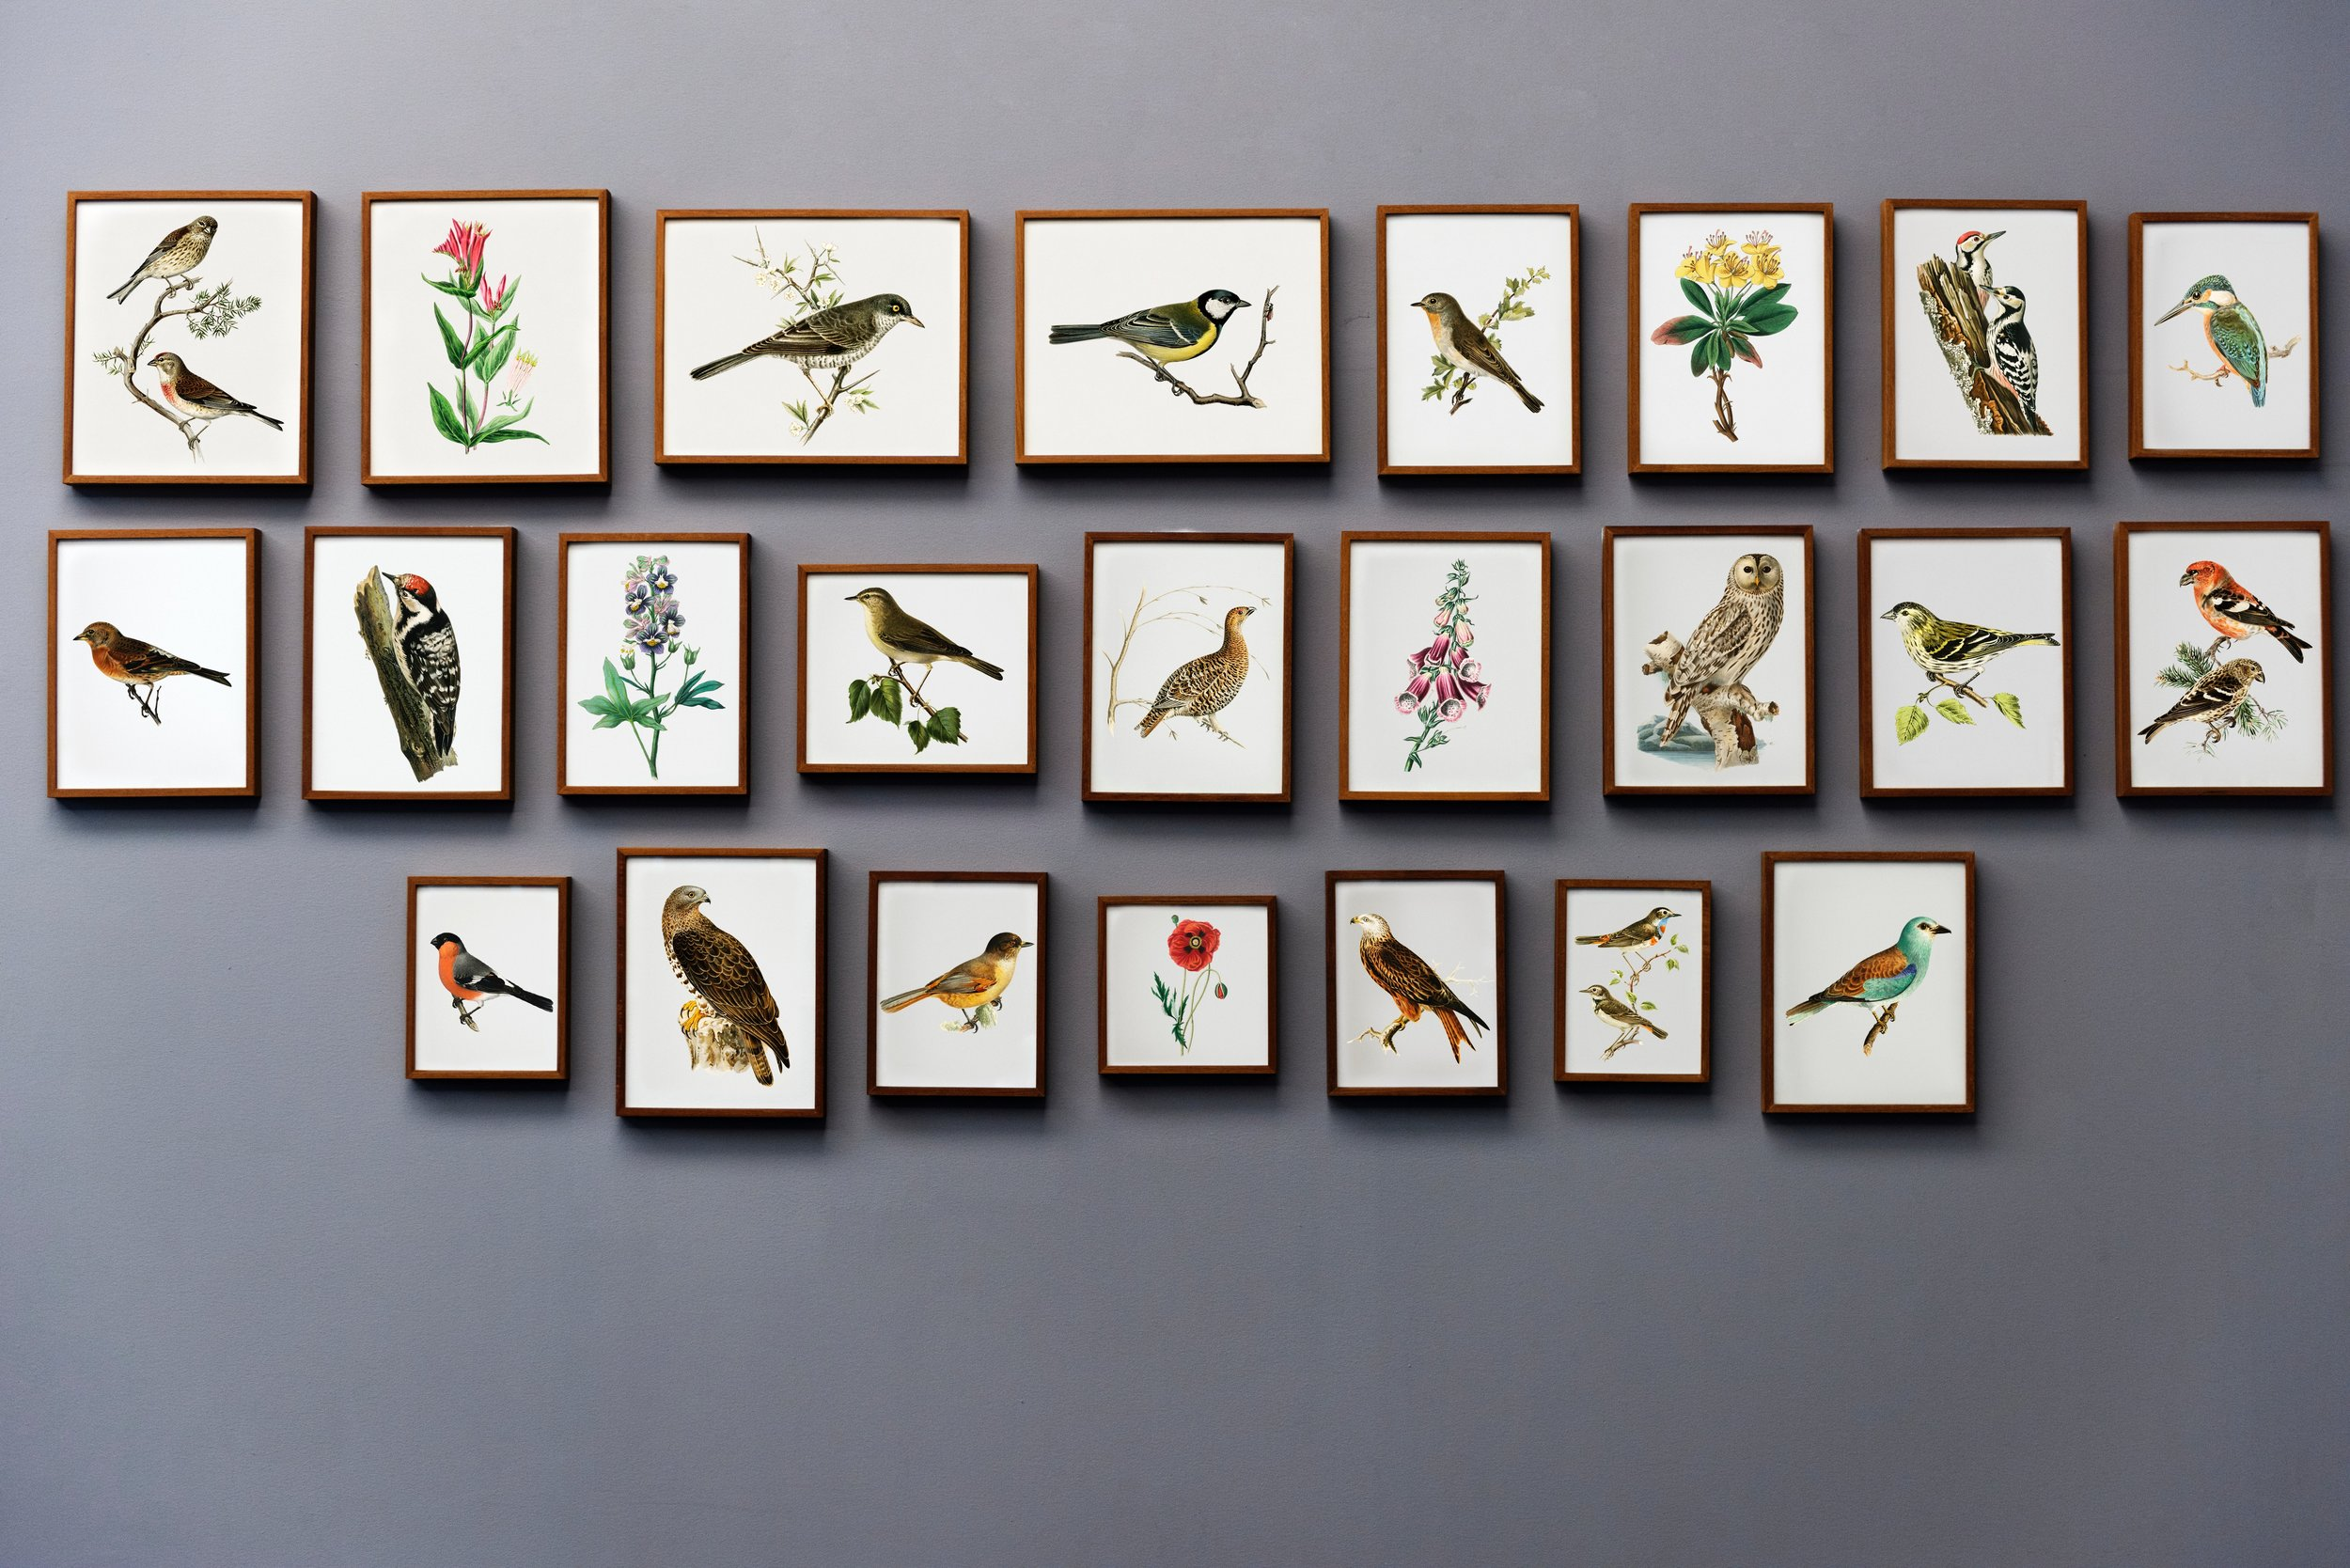 Gallery wall with a bird and floral theme